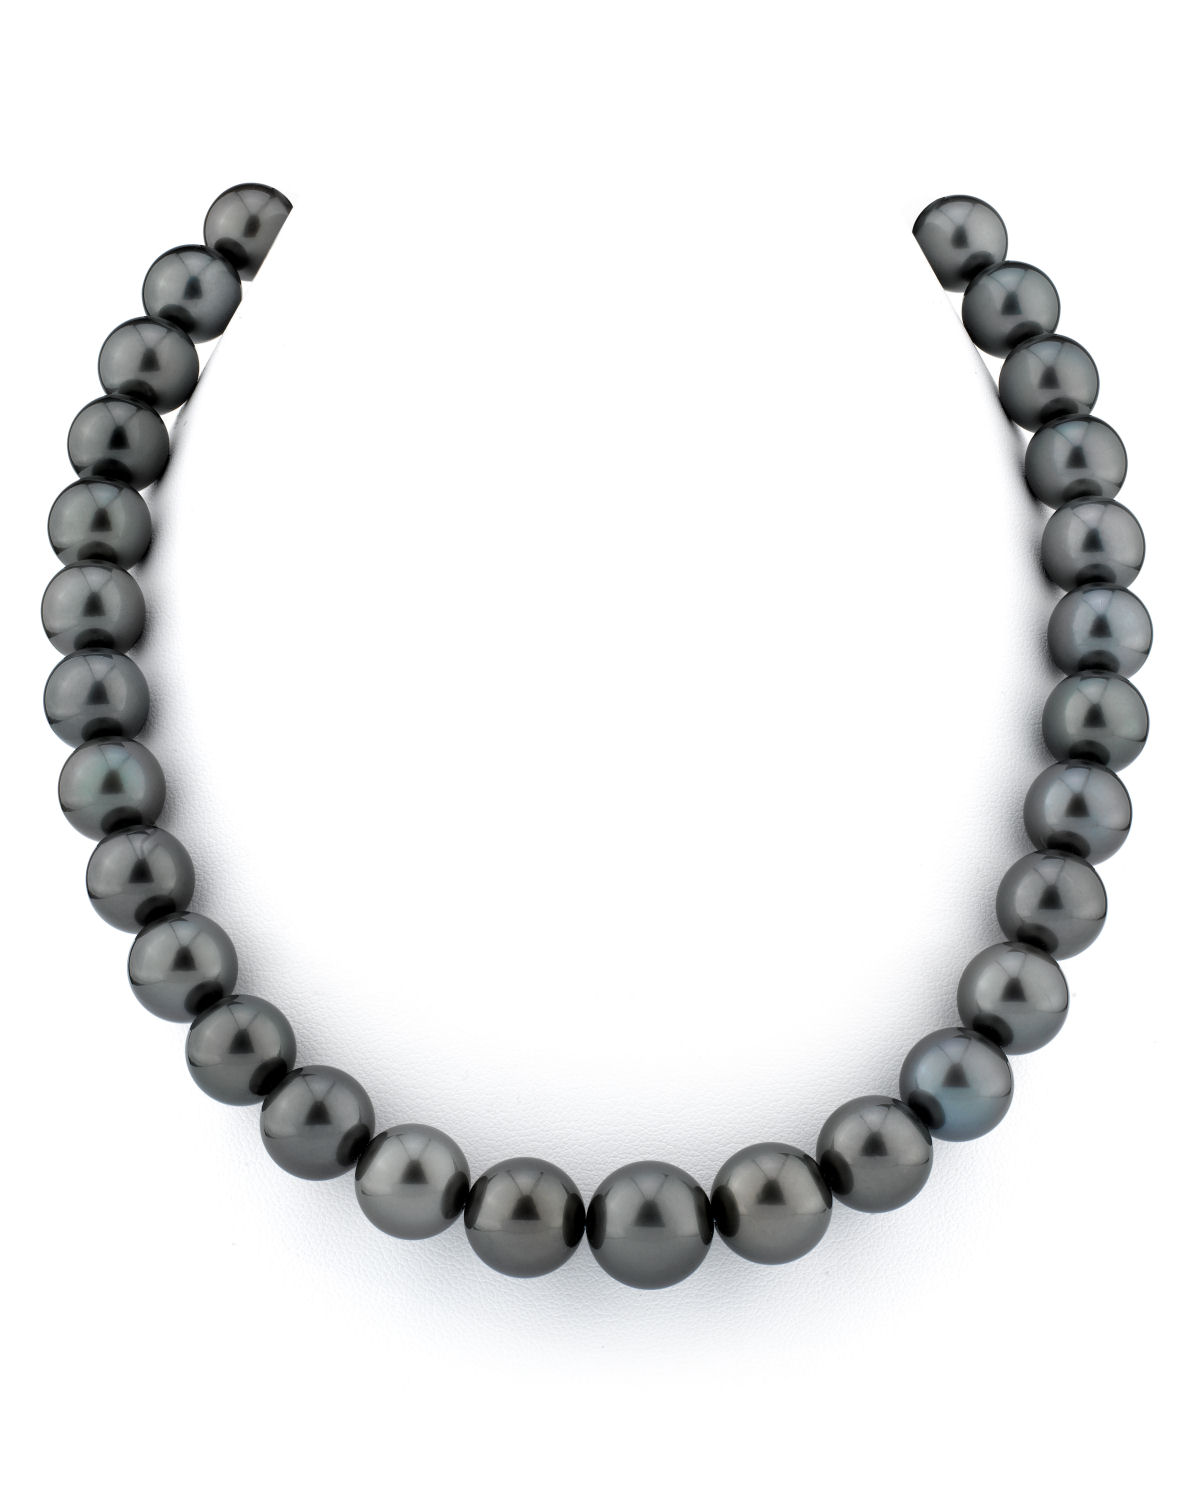 11-13mm Tahitian South Sea Pearl Necklace - AAAA Quality